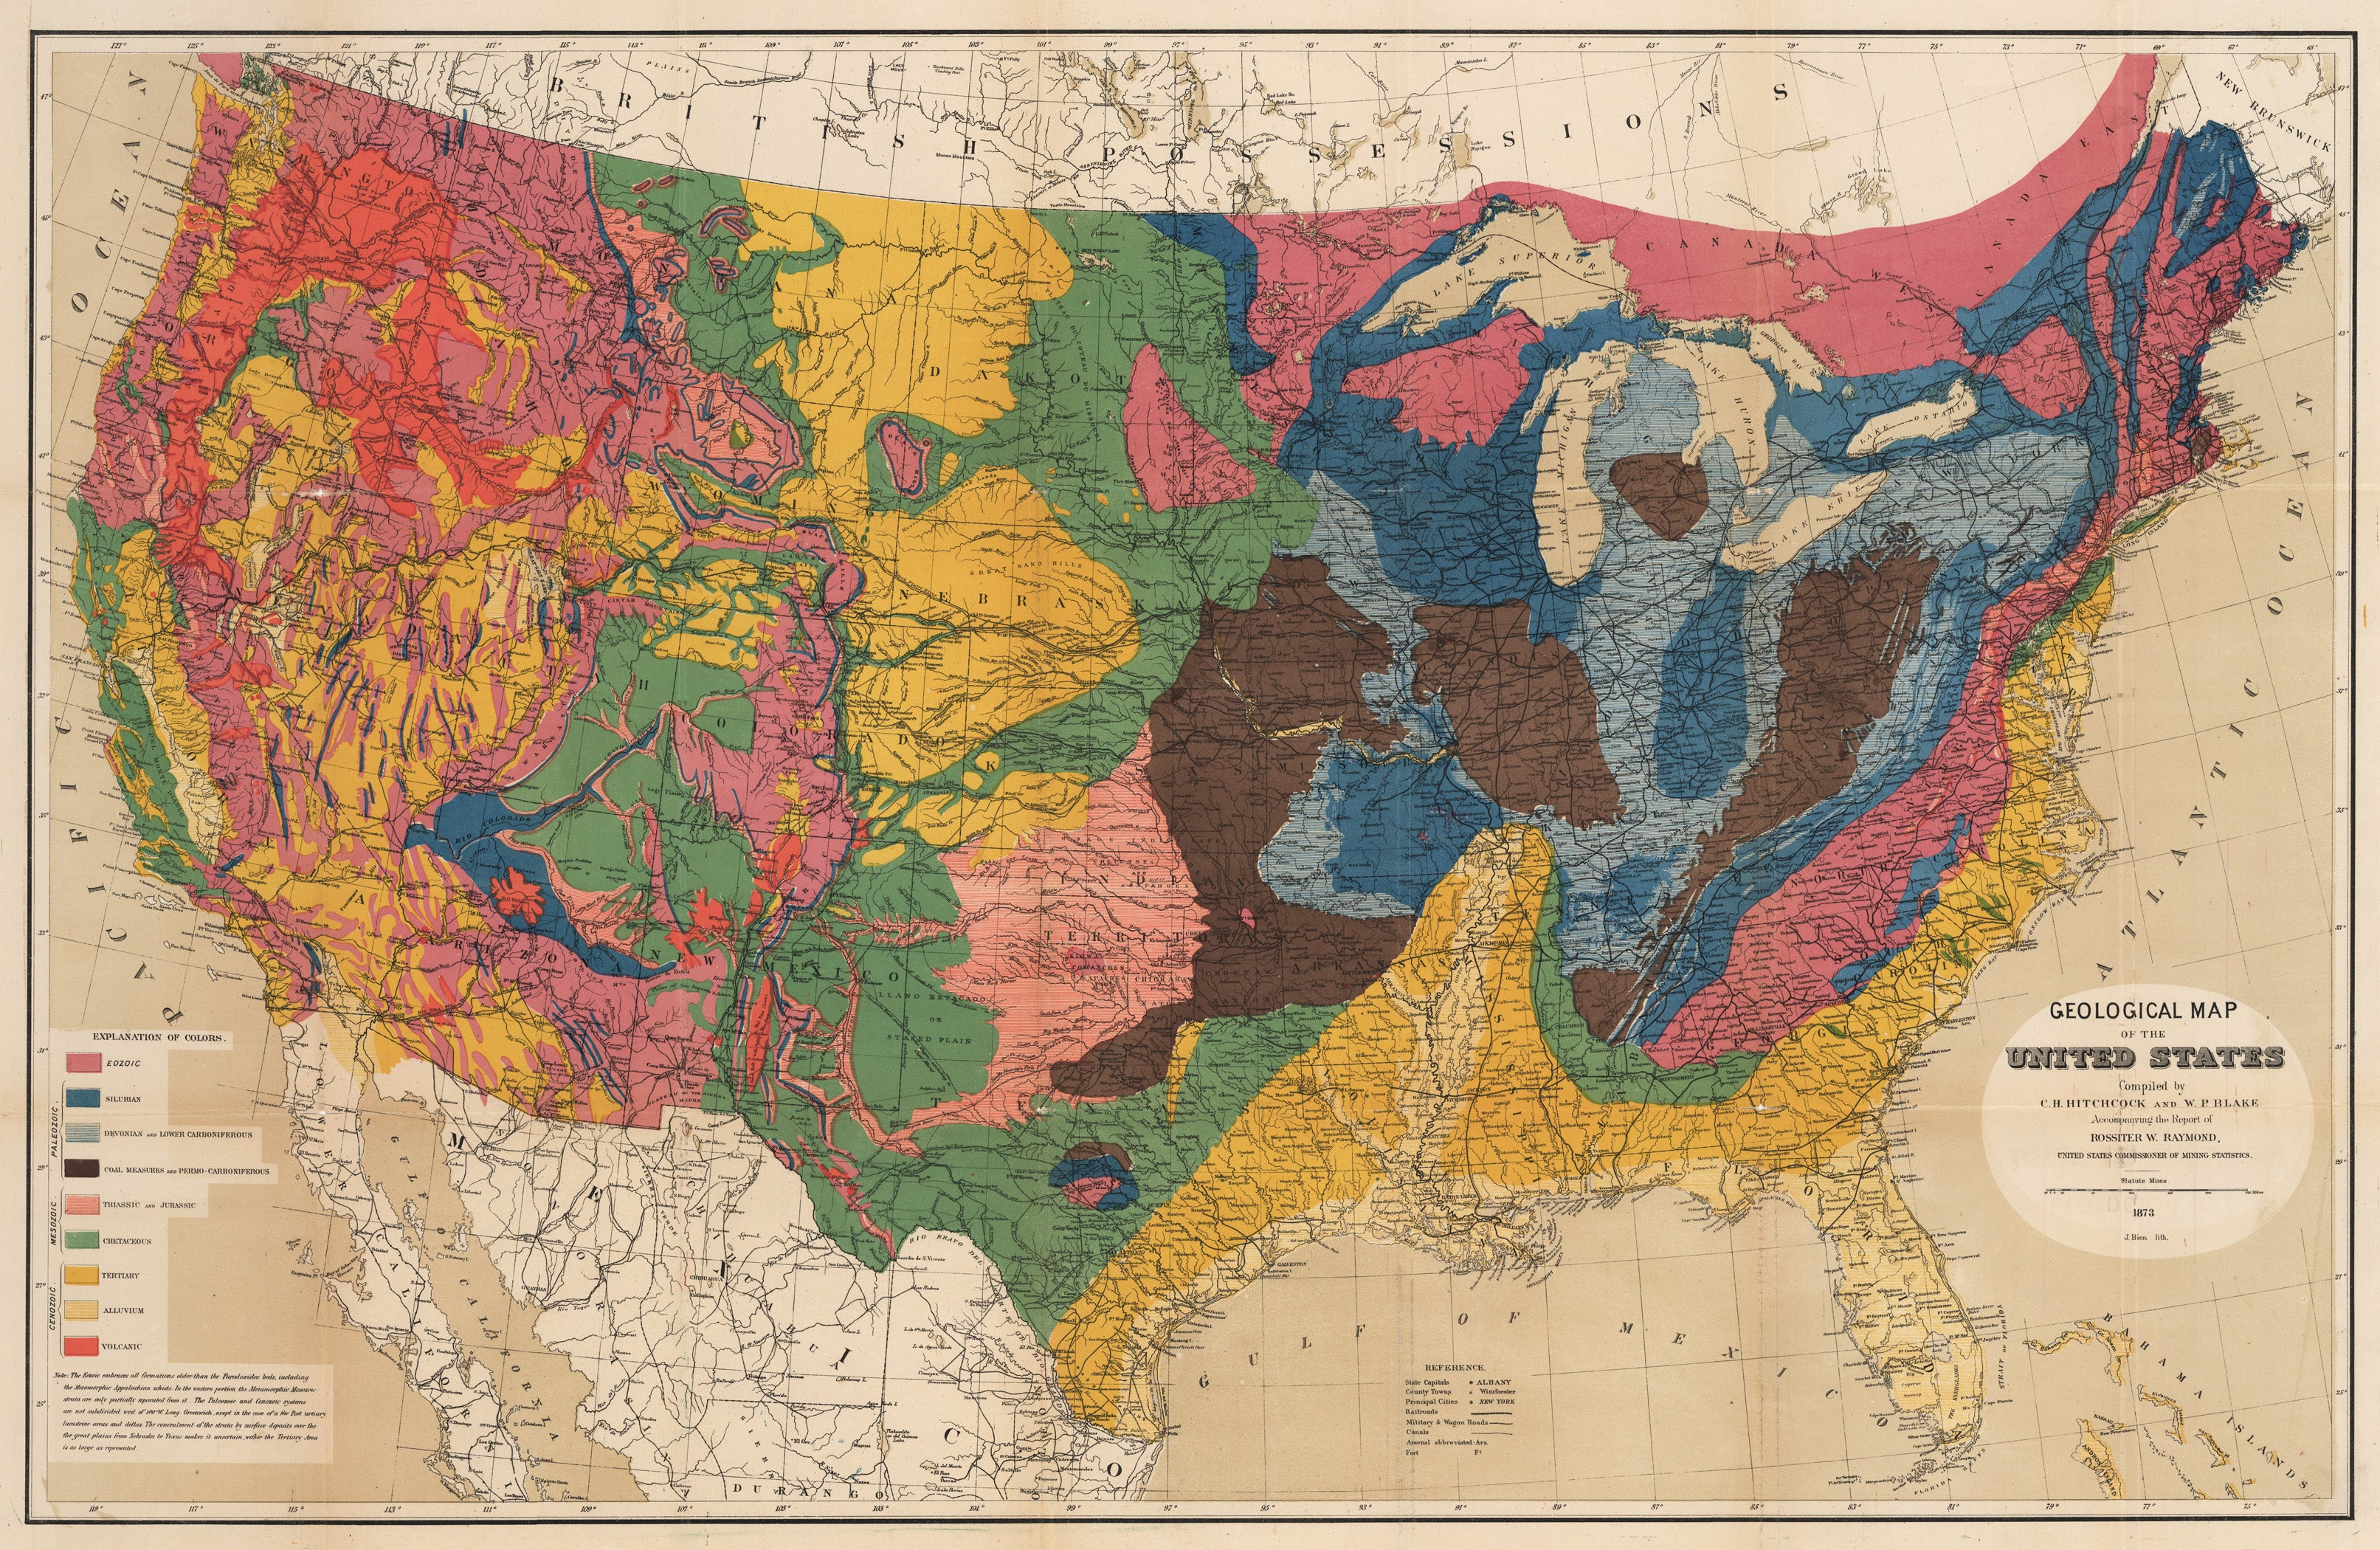 Geological Map of the United States Compiled by C.H. Hitchcock and W.P. Blake 1873